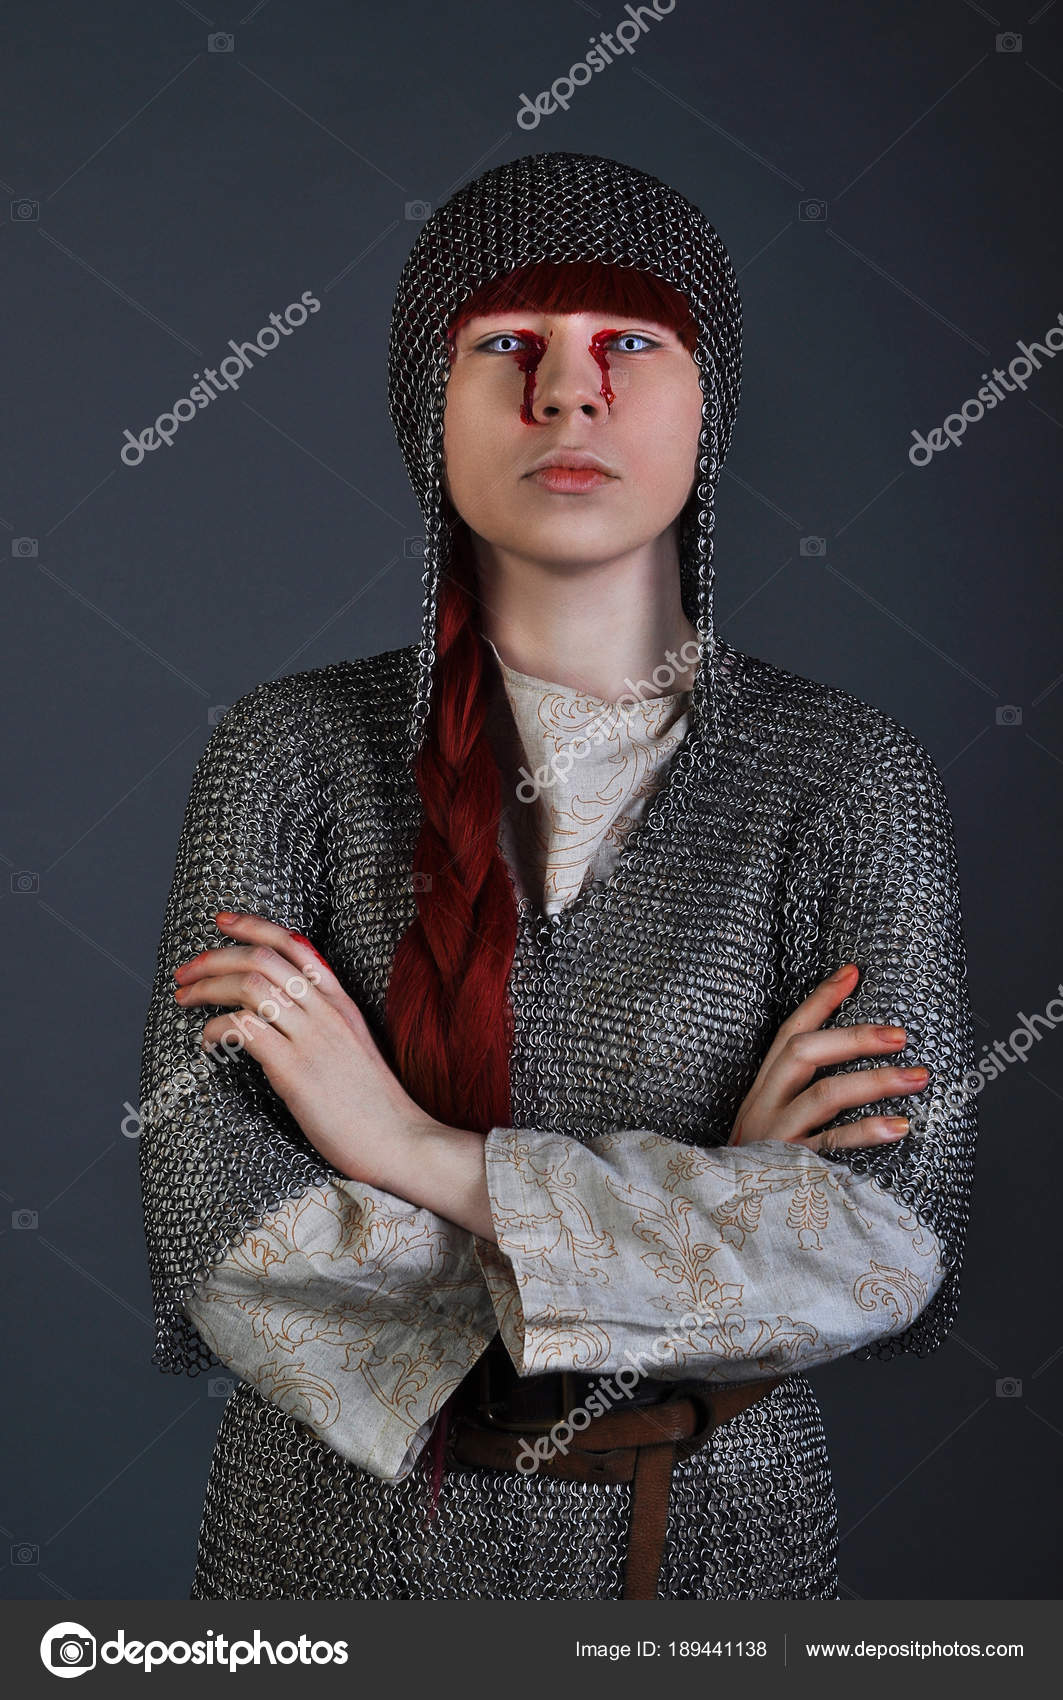 Medieval Girl In Chain Mail With Red Hair Stands On A Gray